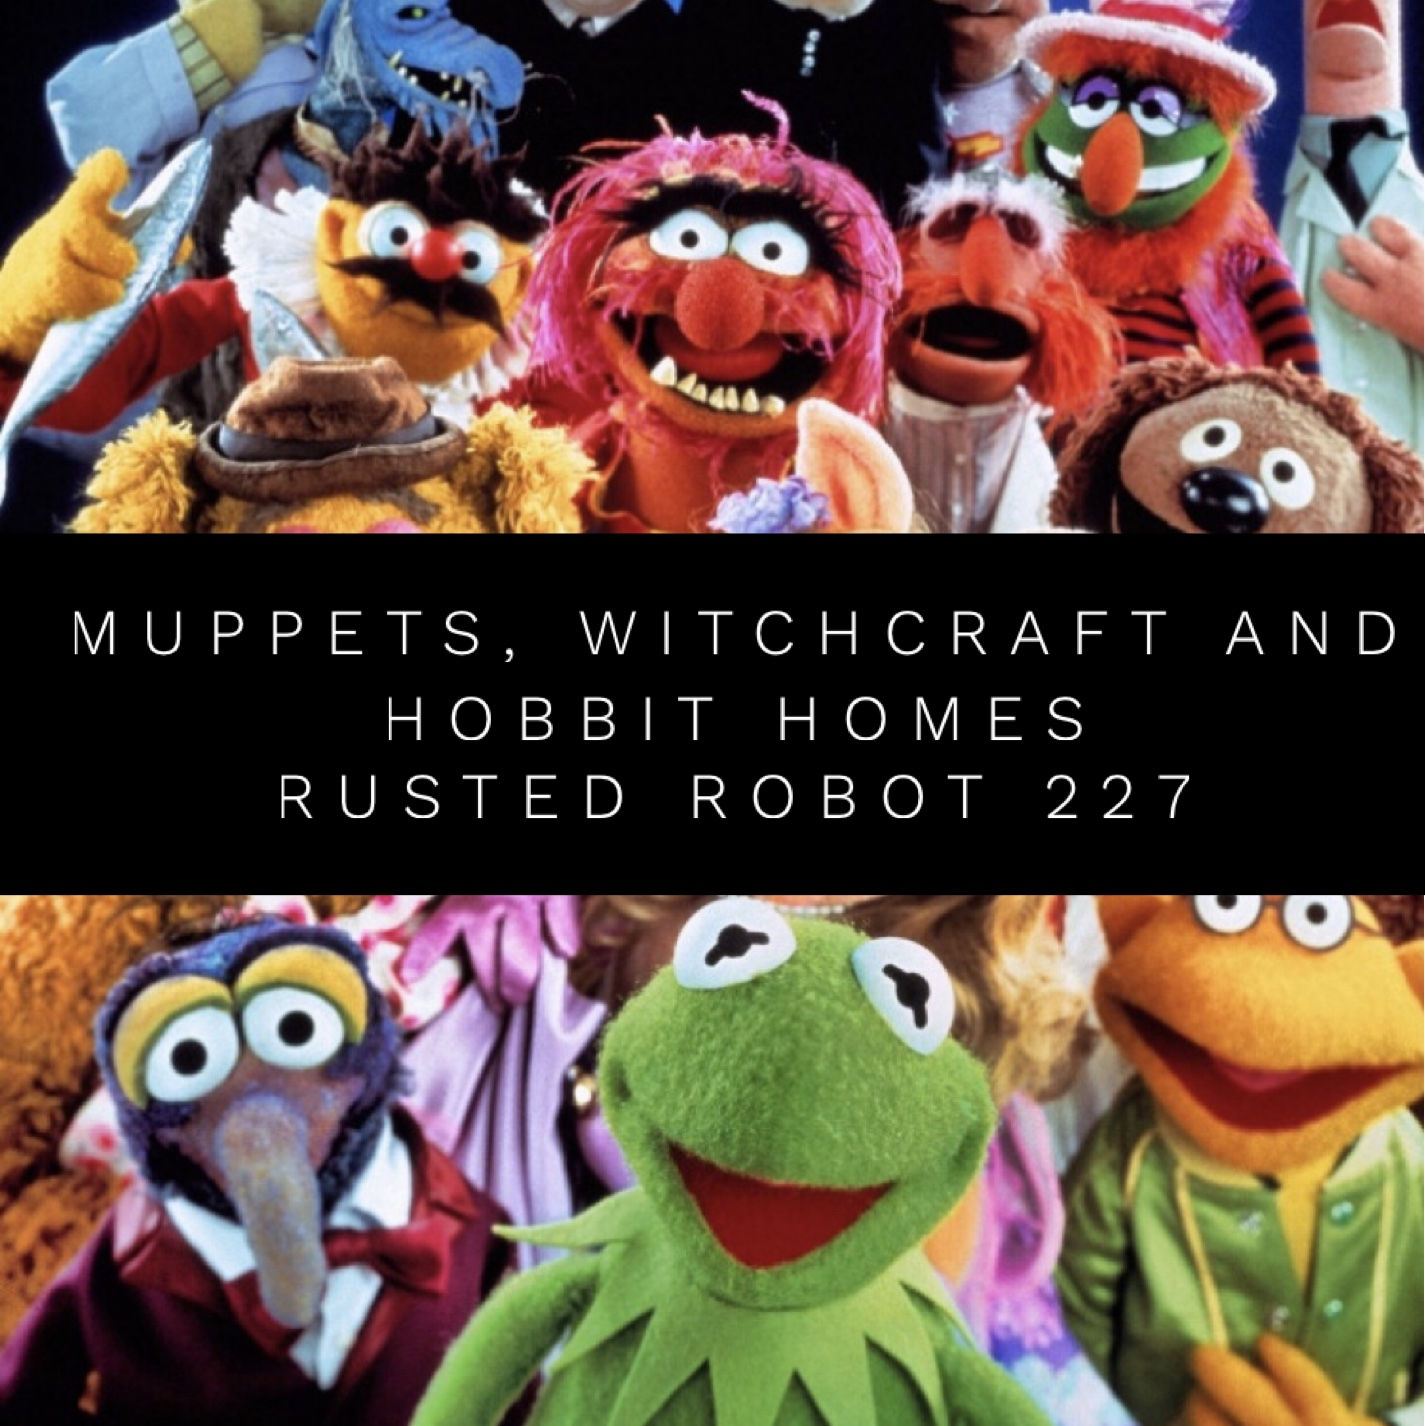 Muppets, Witchcraft and Hobbit Homes - 227